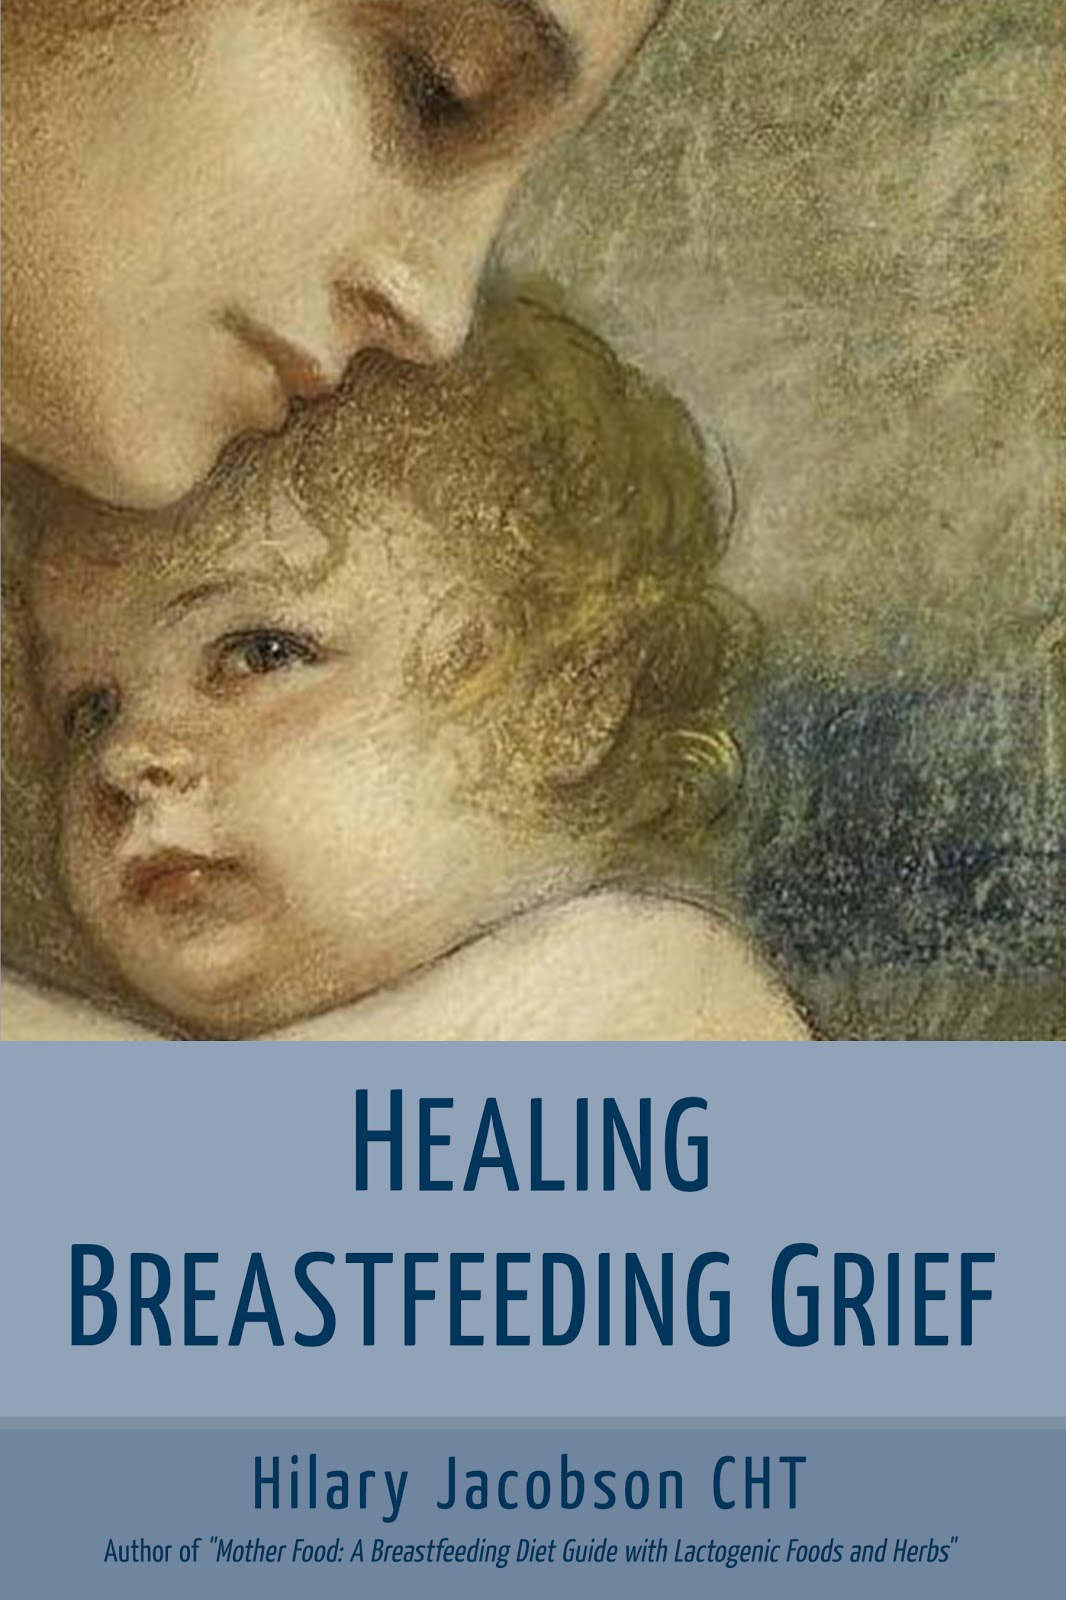 Purchase Healing Breastfeeding Grief.